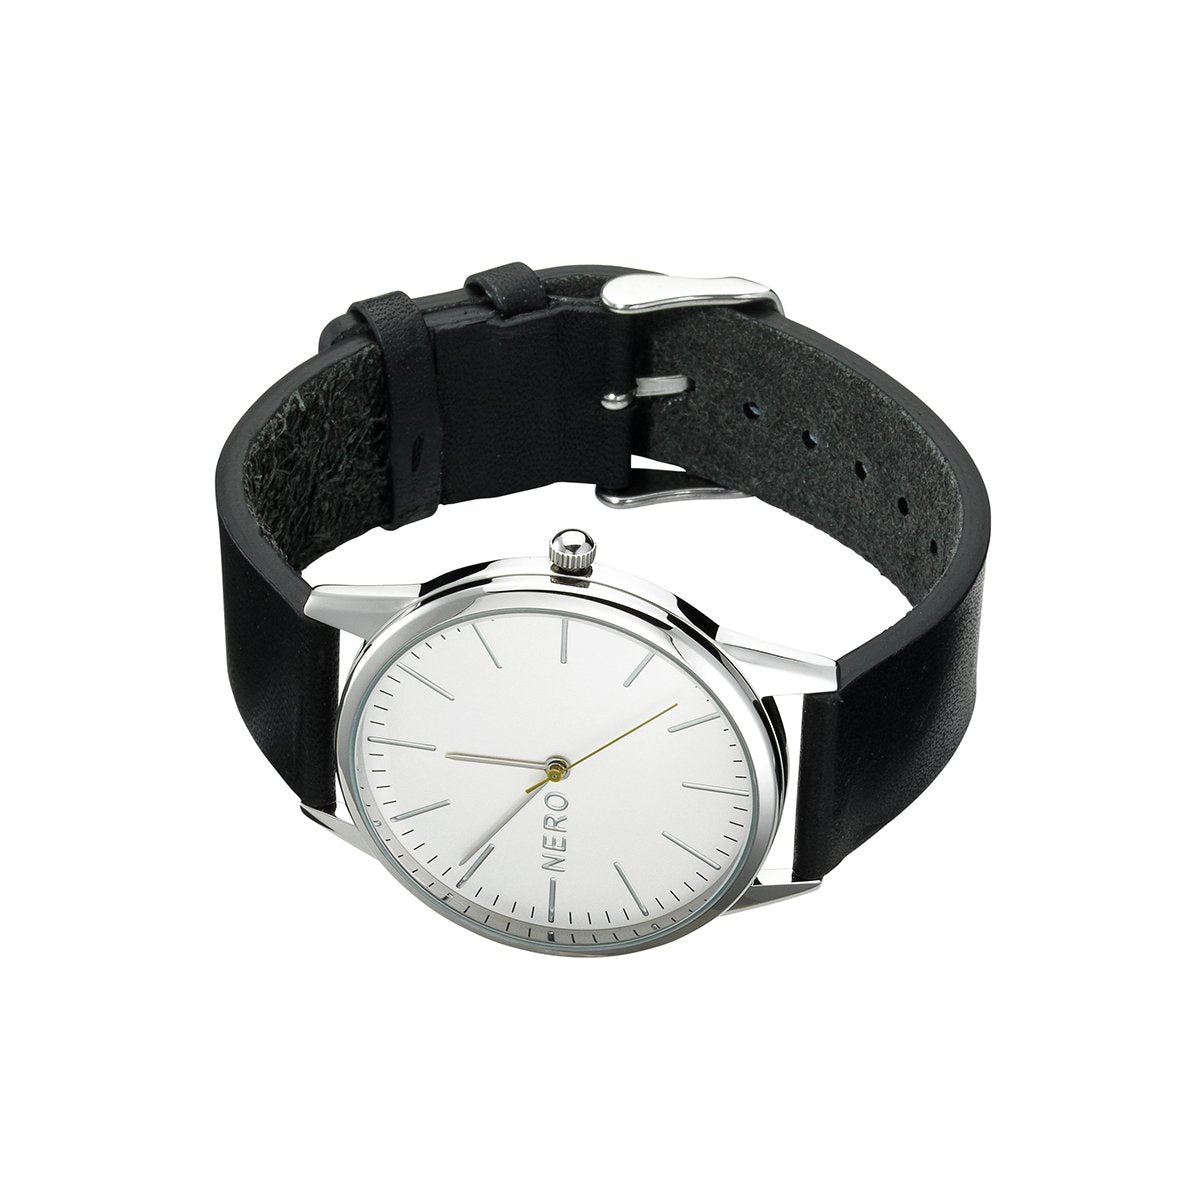 Nero Steel 113 Unisex Charcoal Leather Strap Watch